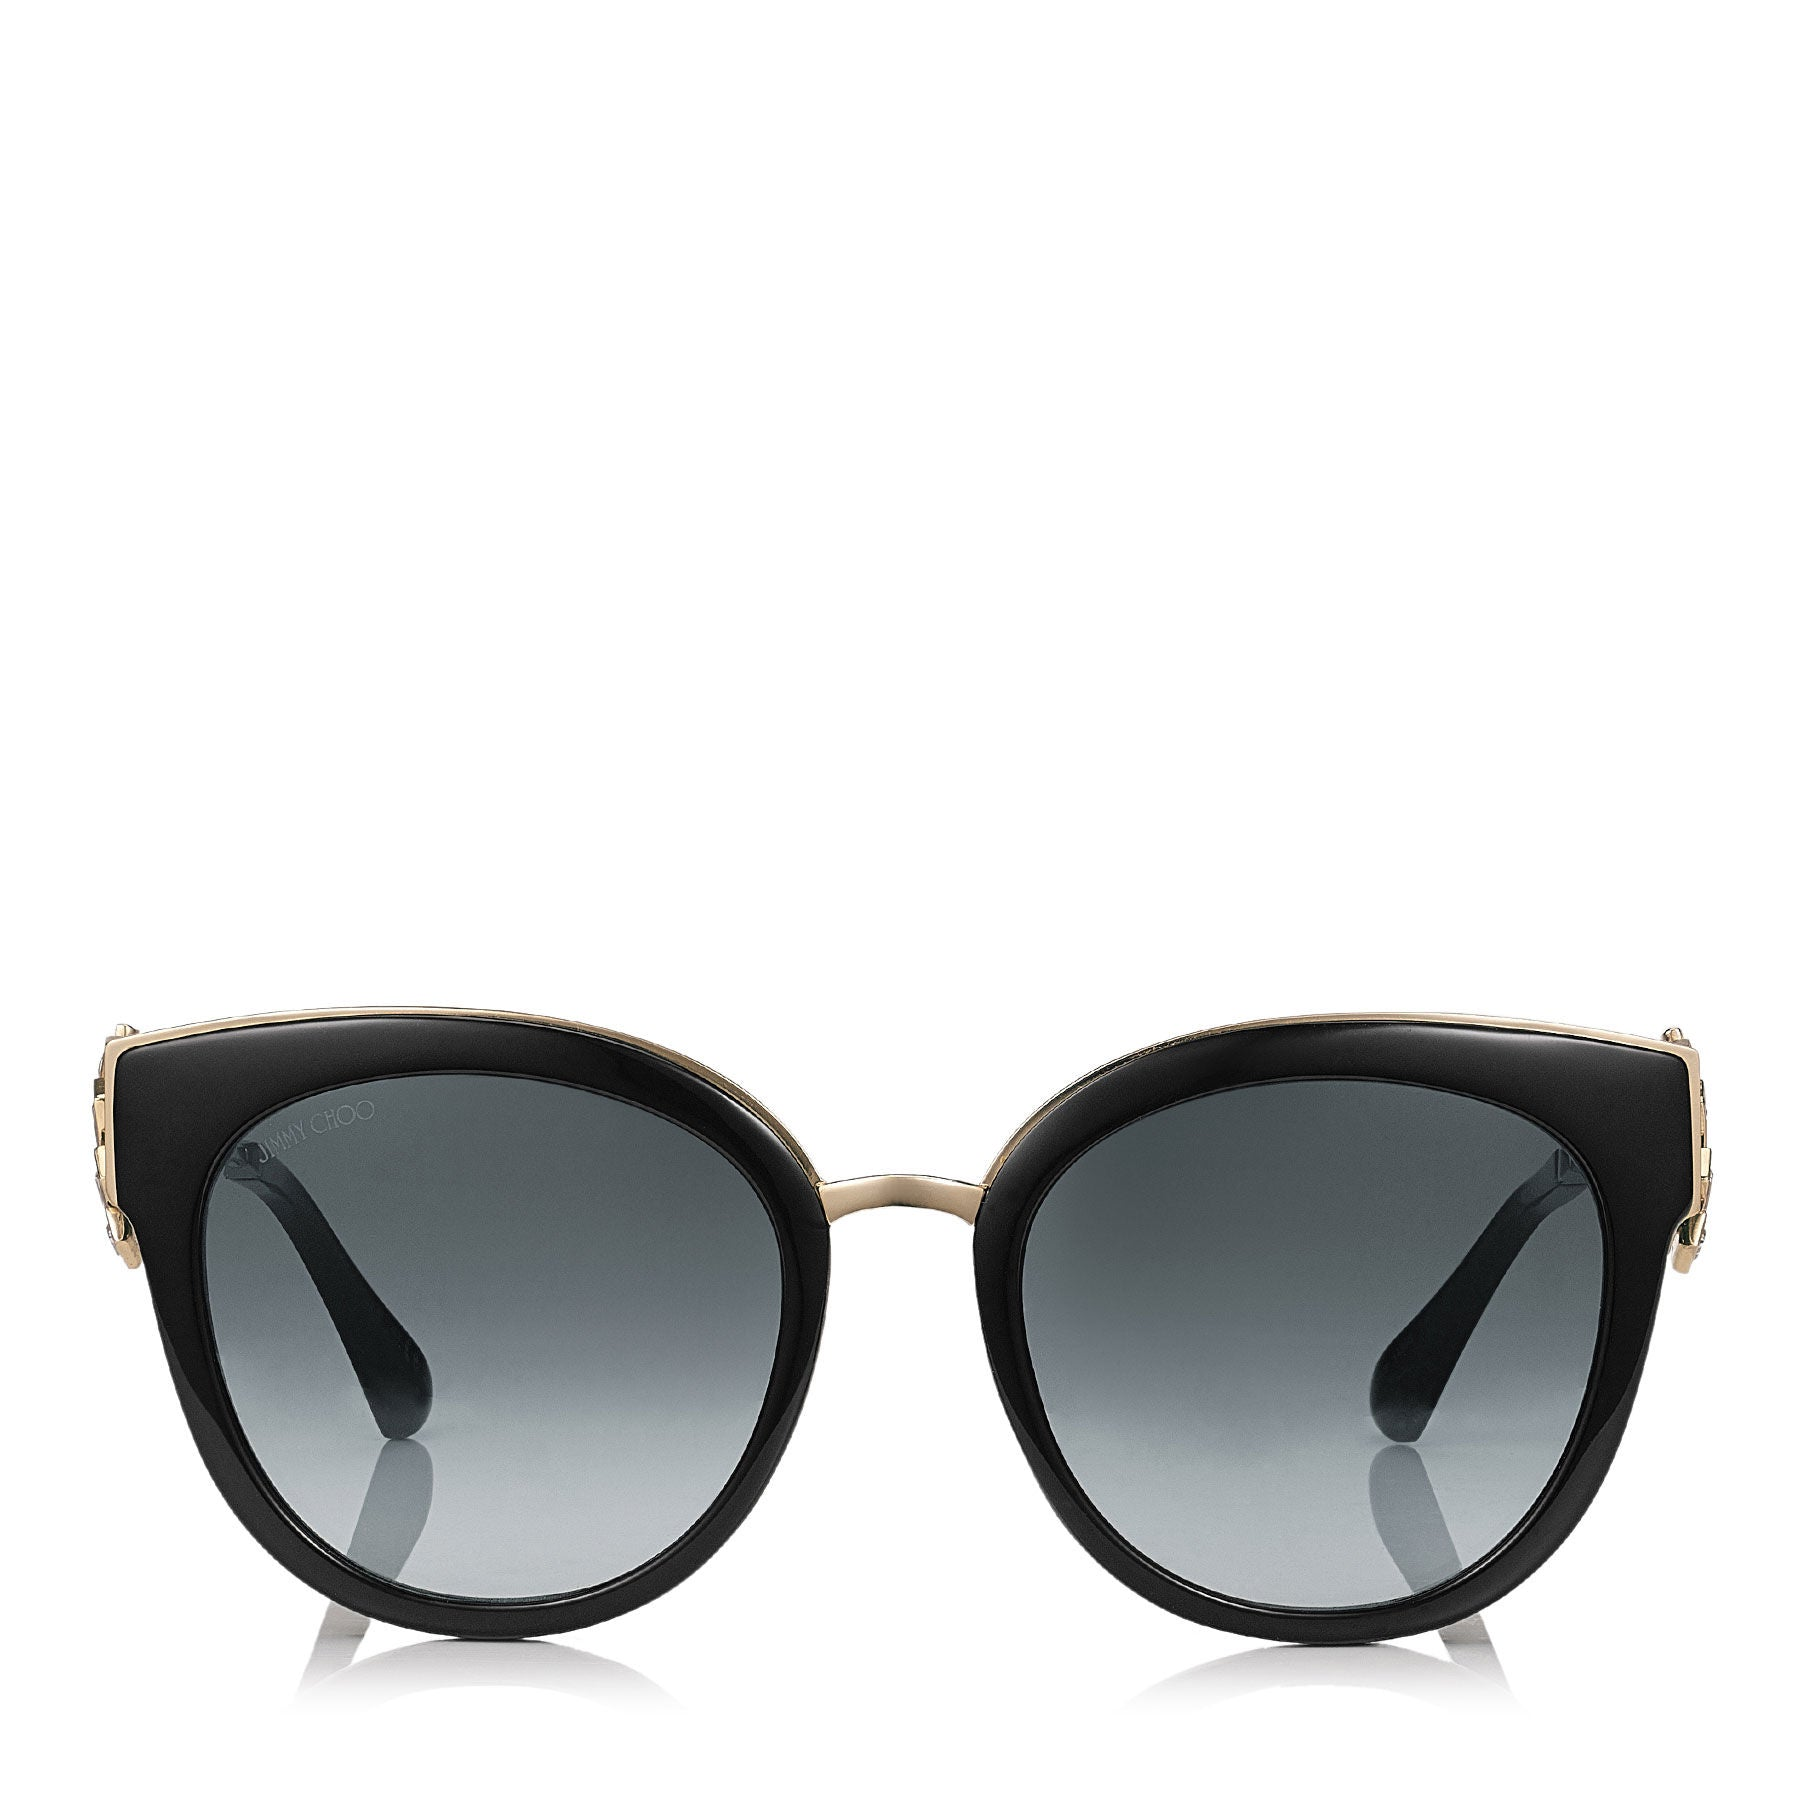 JIMMY CHOO Jade Black and Gold Oversized Sunglasses with Clip On Earrings ITEM NO. JADES53E1A5